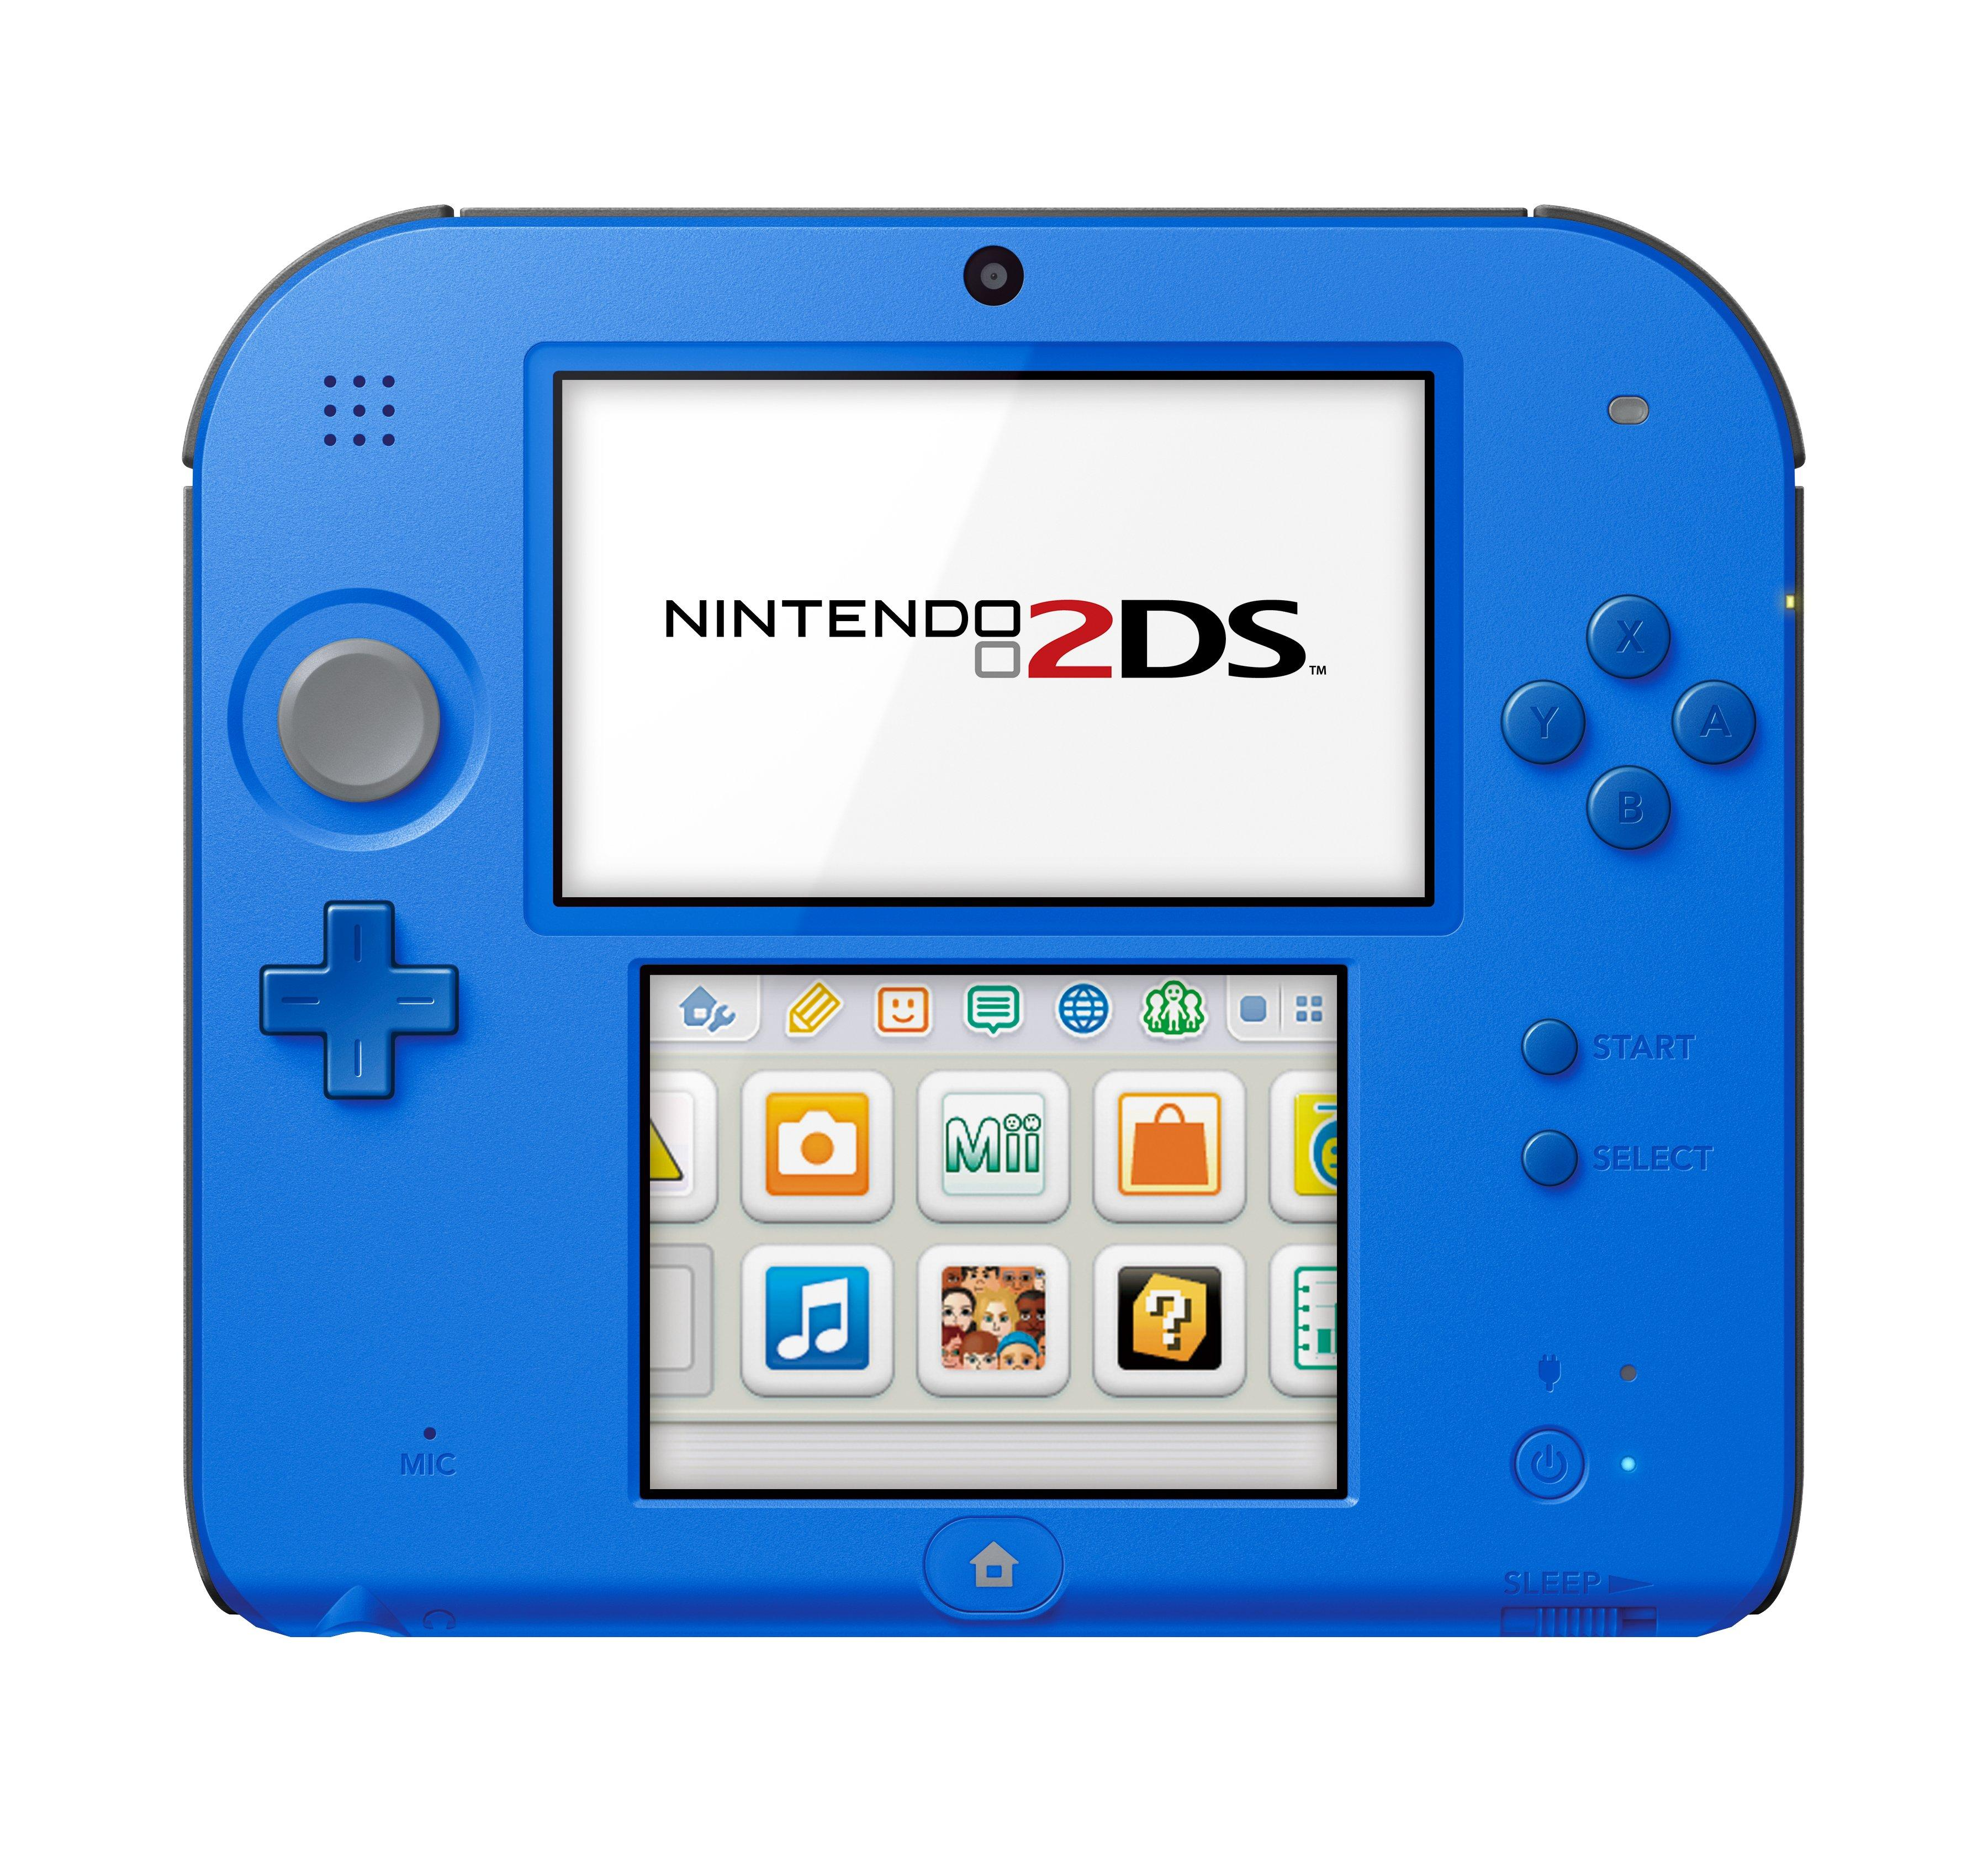 2 ds nintendo OFF 68% - Online Shopping Site for Fashion & Lifestyle.